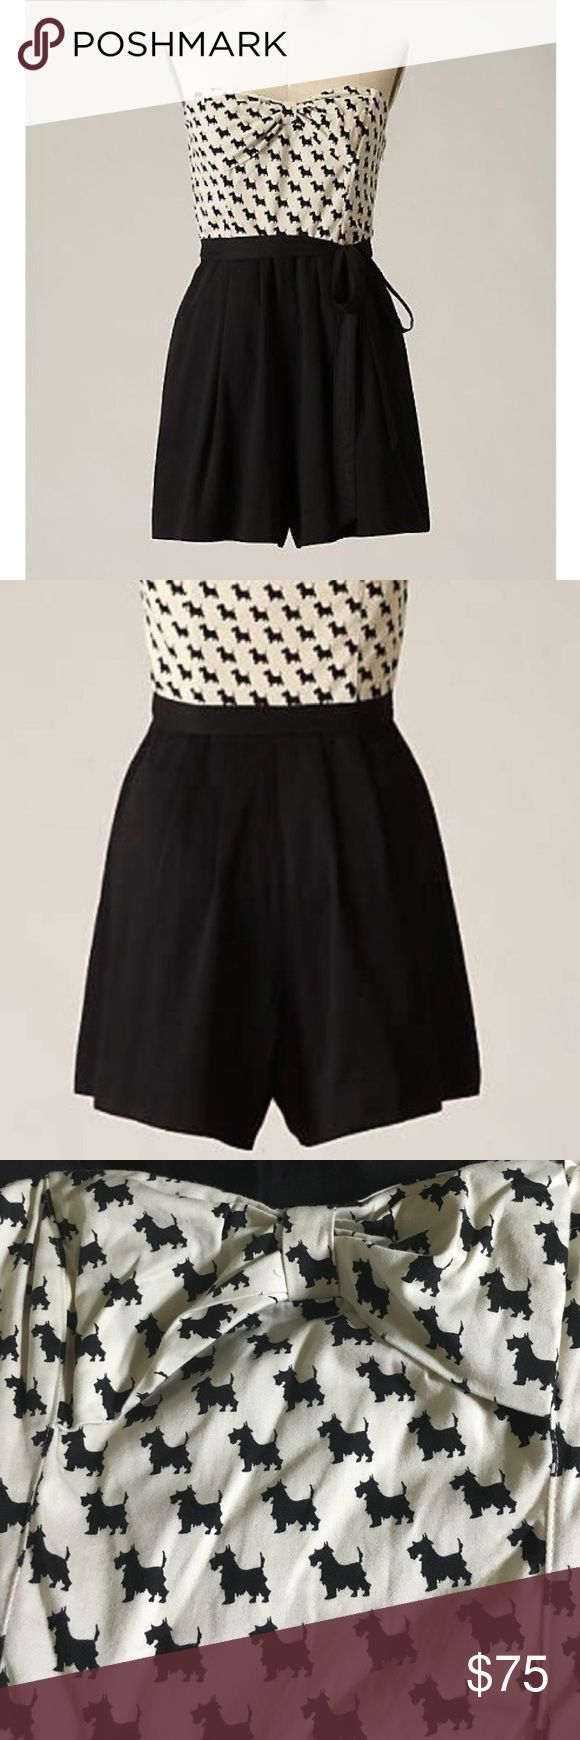 Anthropologie Black & White Scottie Dog Romper Strapless Playsuit romper by Maeve from Anthropologie. Size 6. Worn once. No belt included Anthropologie Dresses